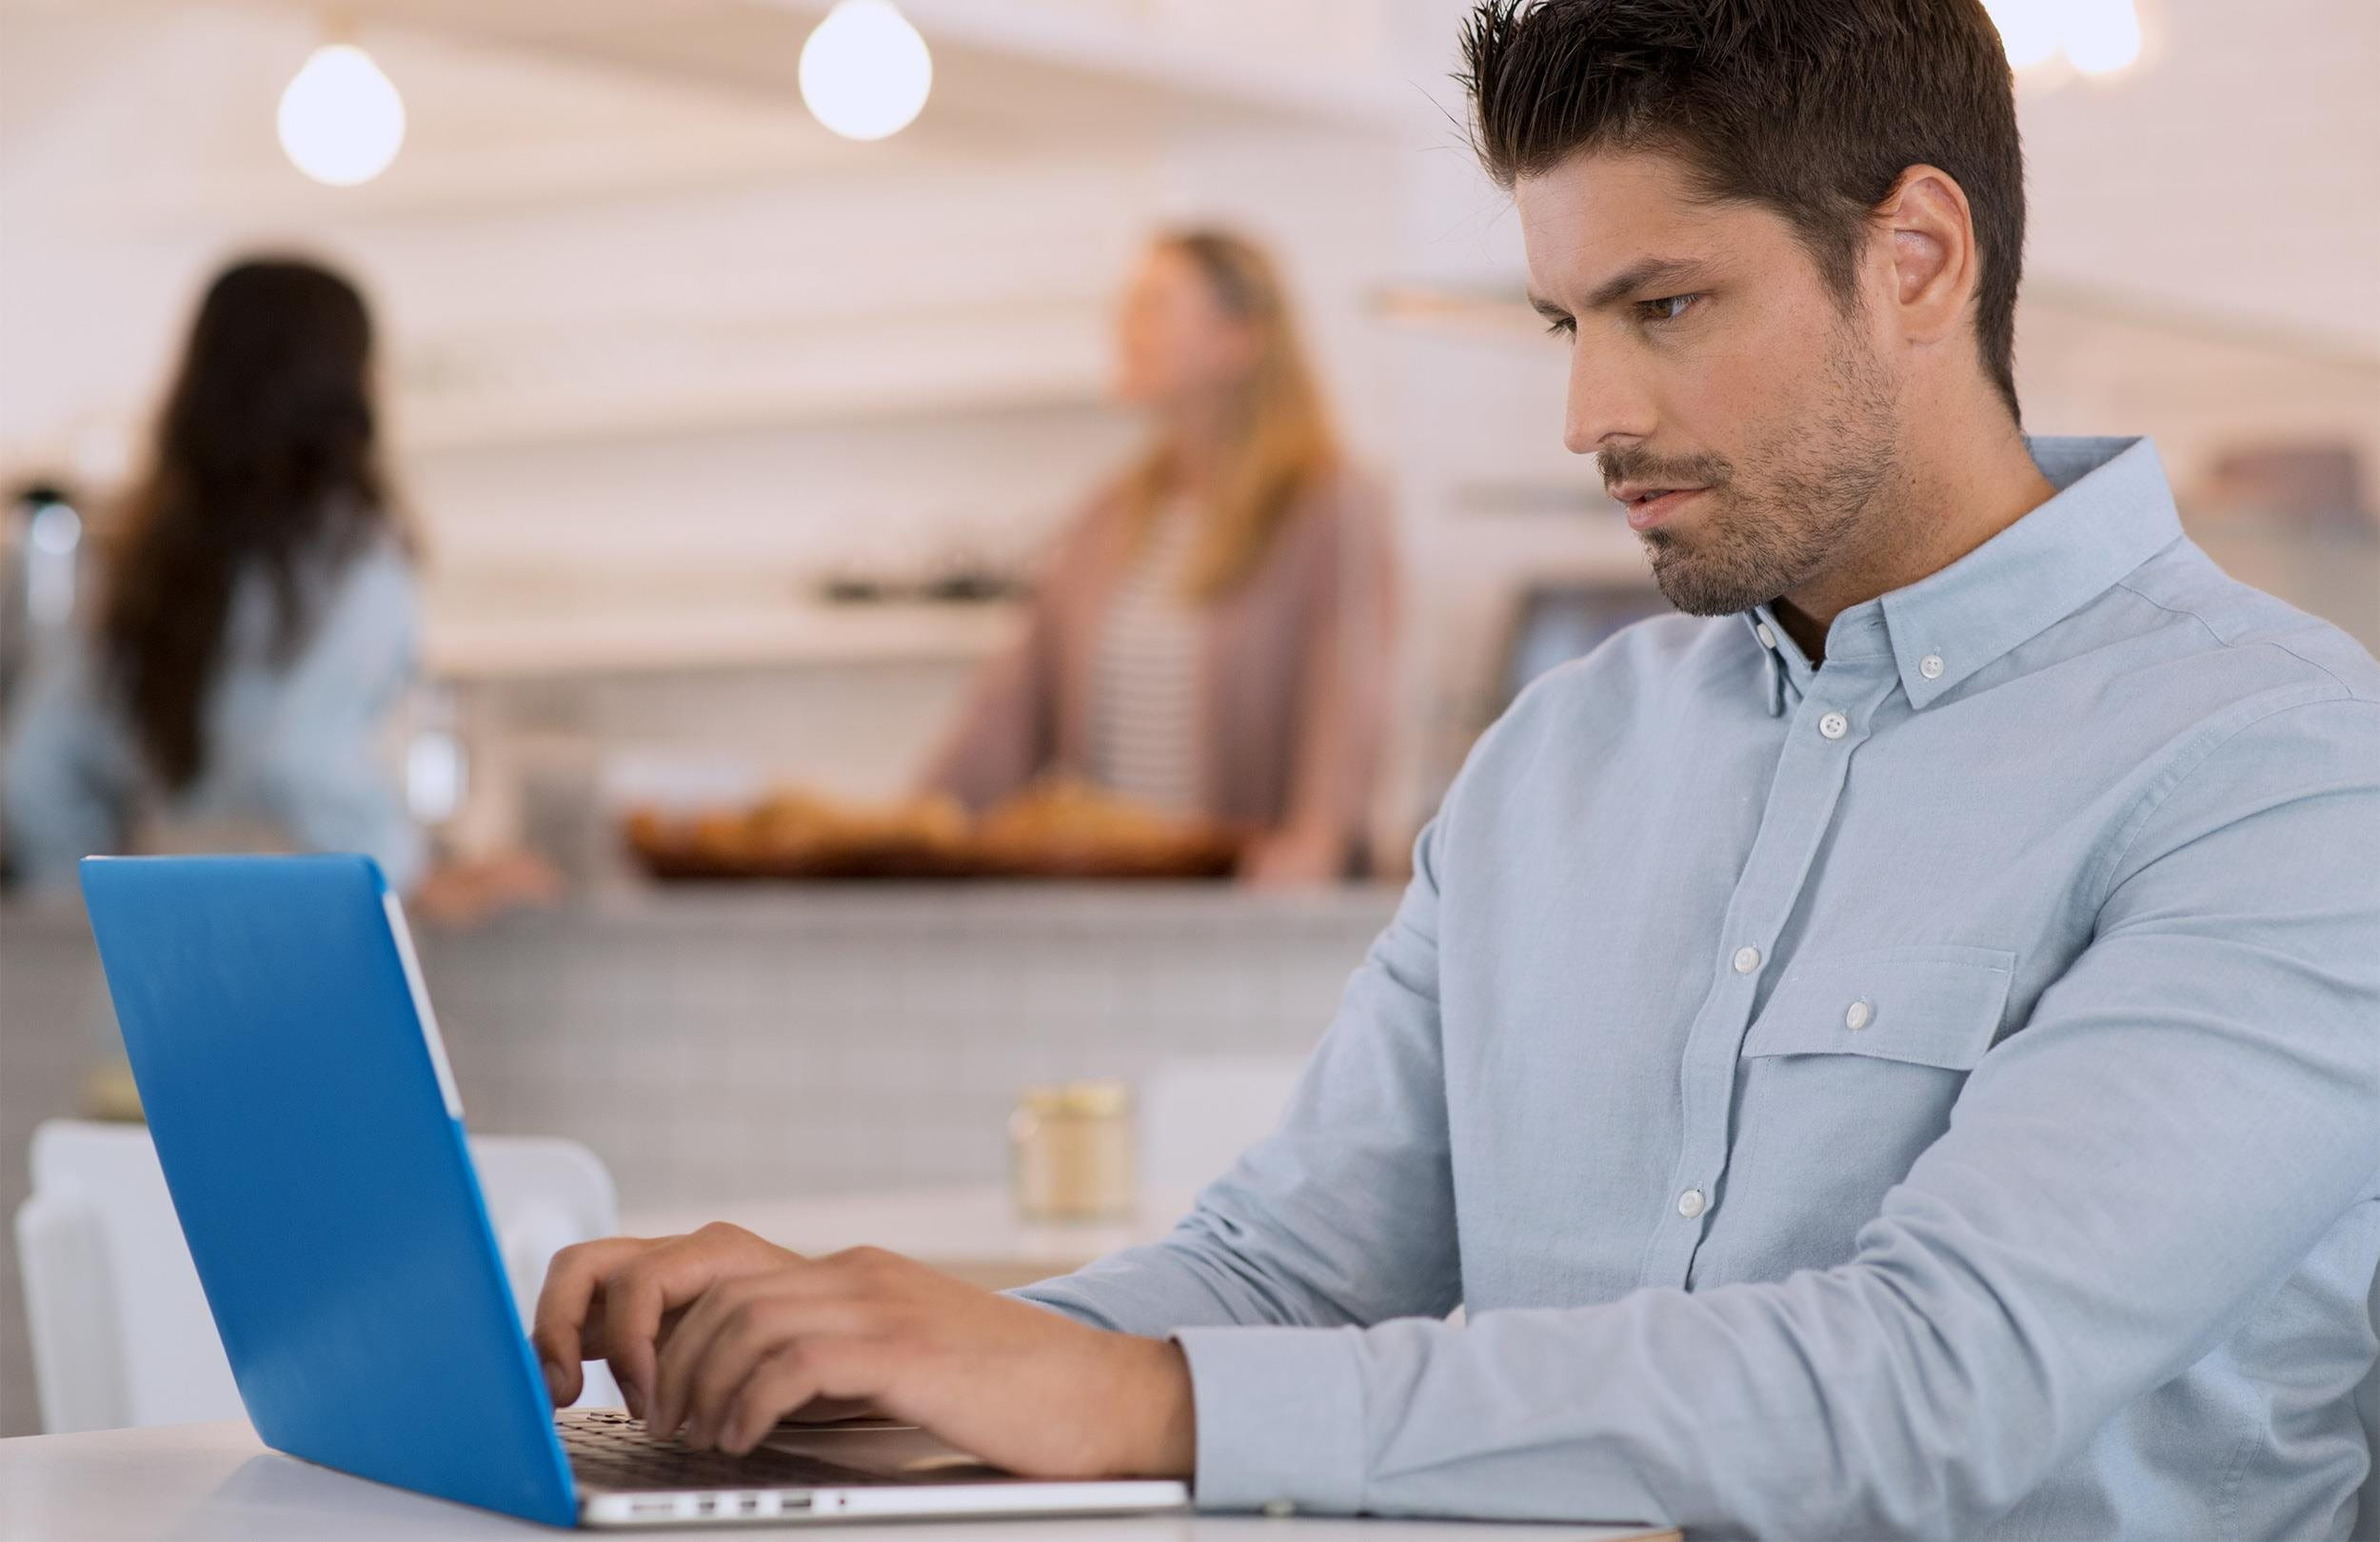 A man fills out an e-bill on his laptop.